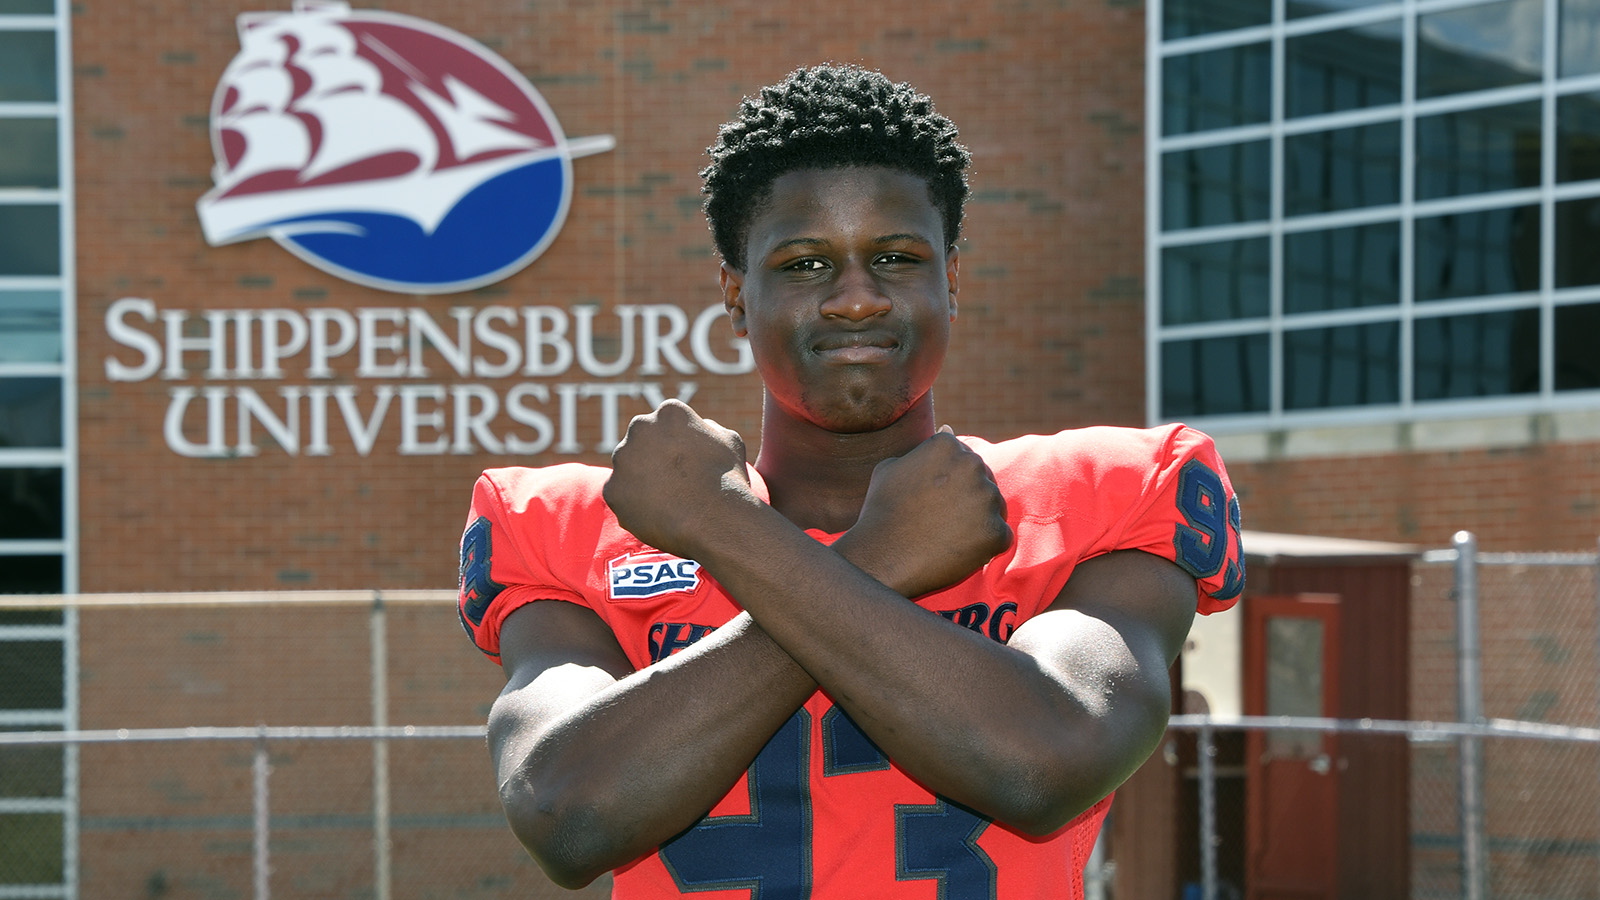 Class of 2019 Chisom Ifeanyi Shippensburg